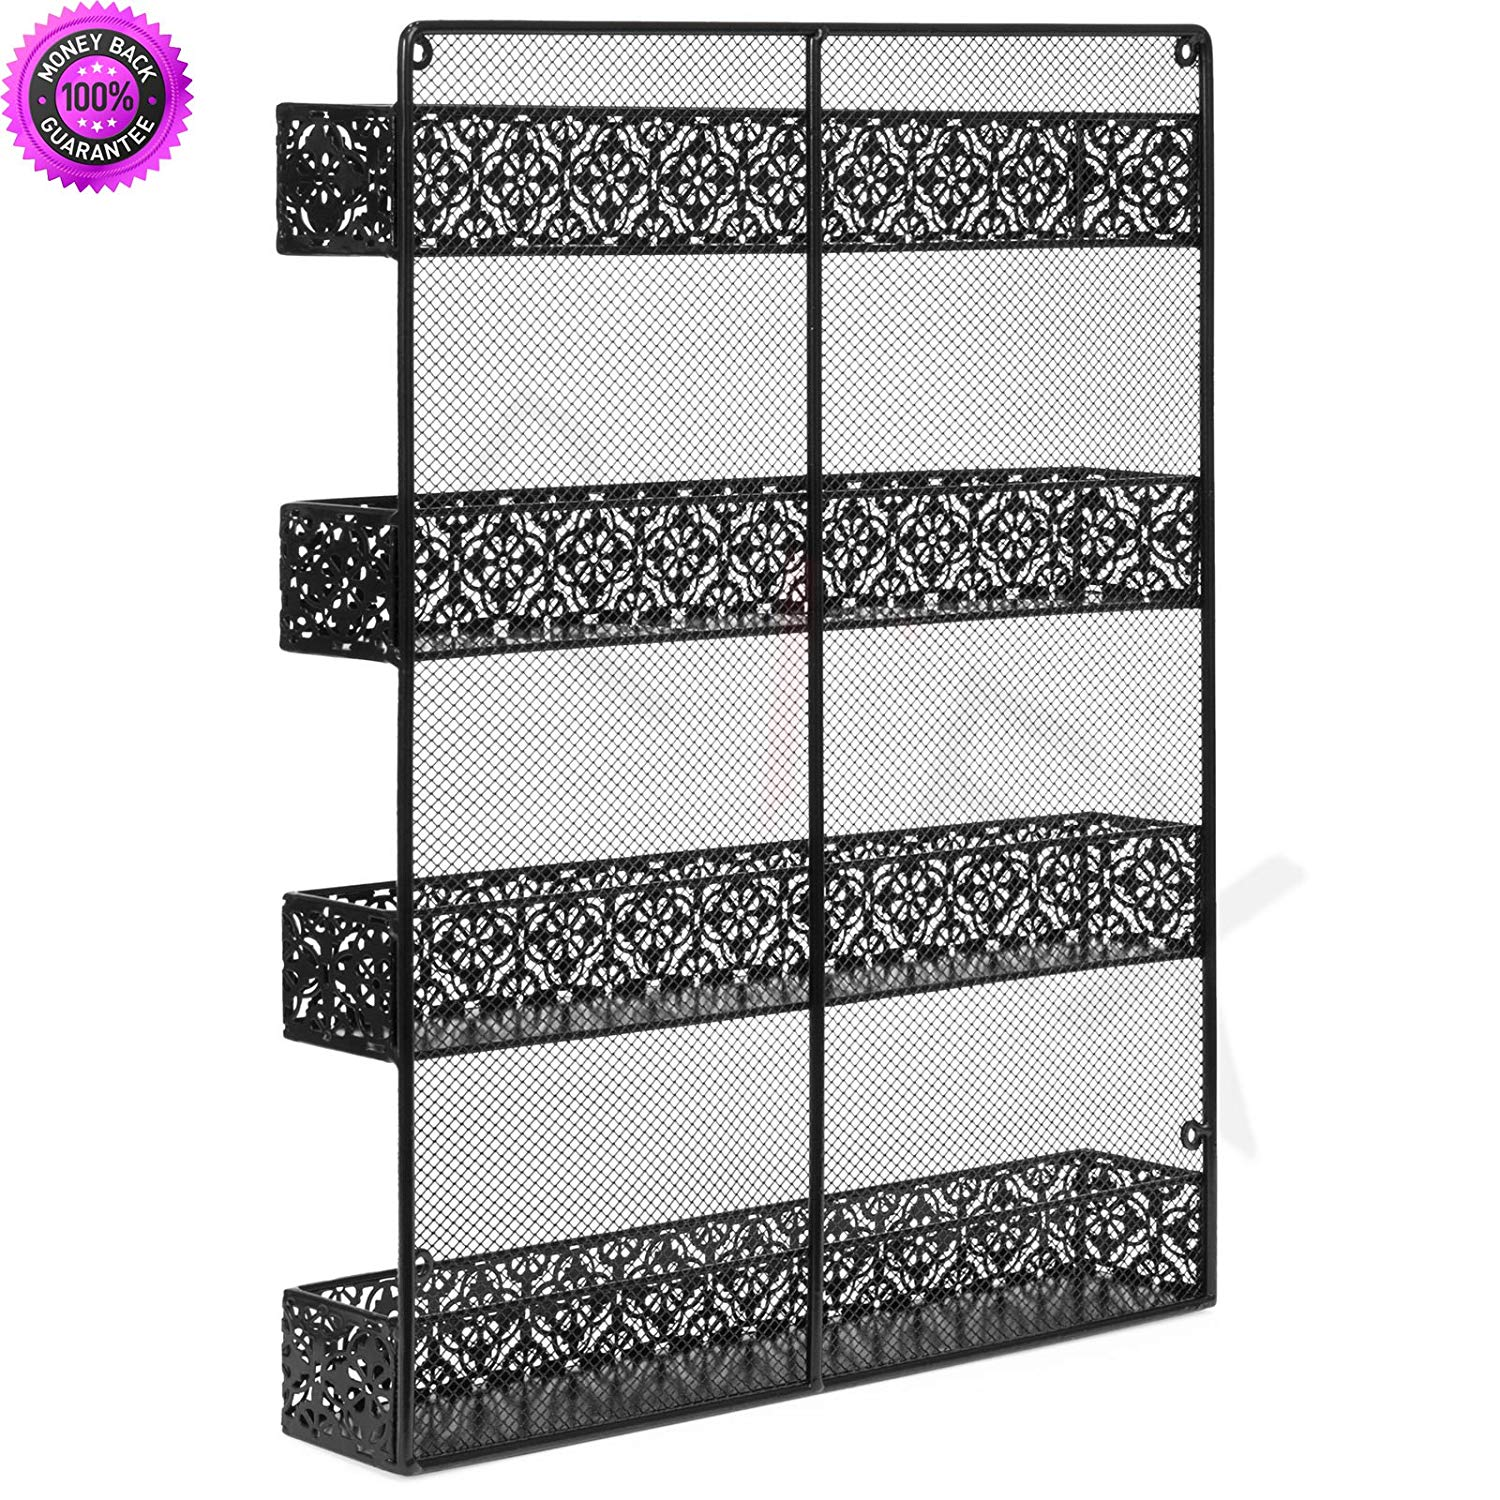 DzVeX_4 Tier Large Wall Mounted Wire Spice Rack Organizer (Black) And searches left. spice rack spice racks for cabinets container store spice rack wall mount spice rack spice rack bed bat